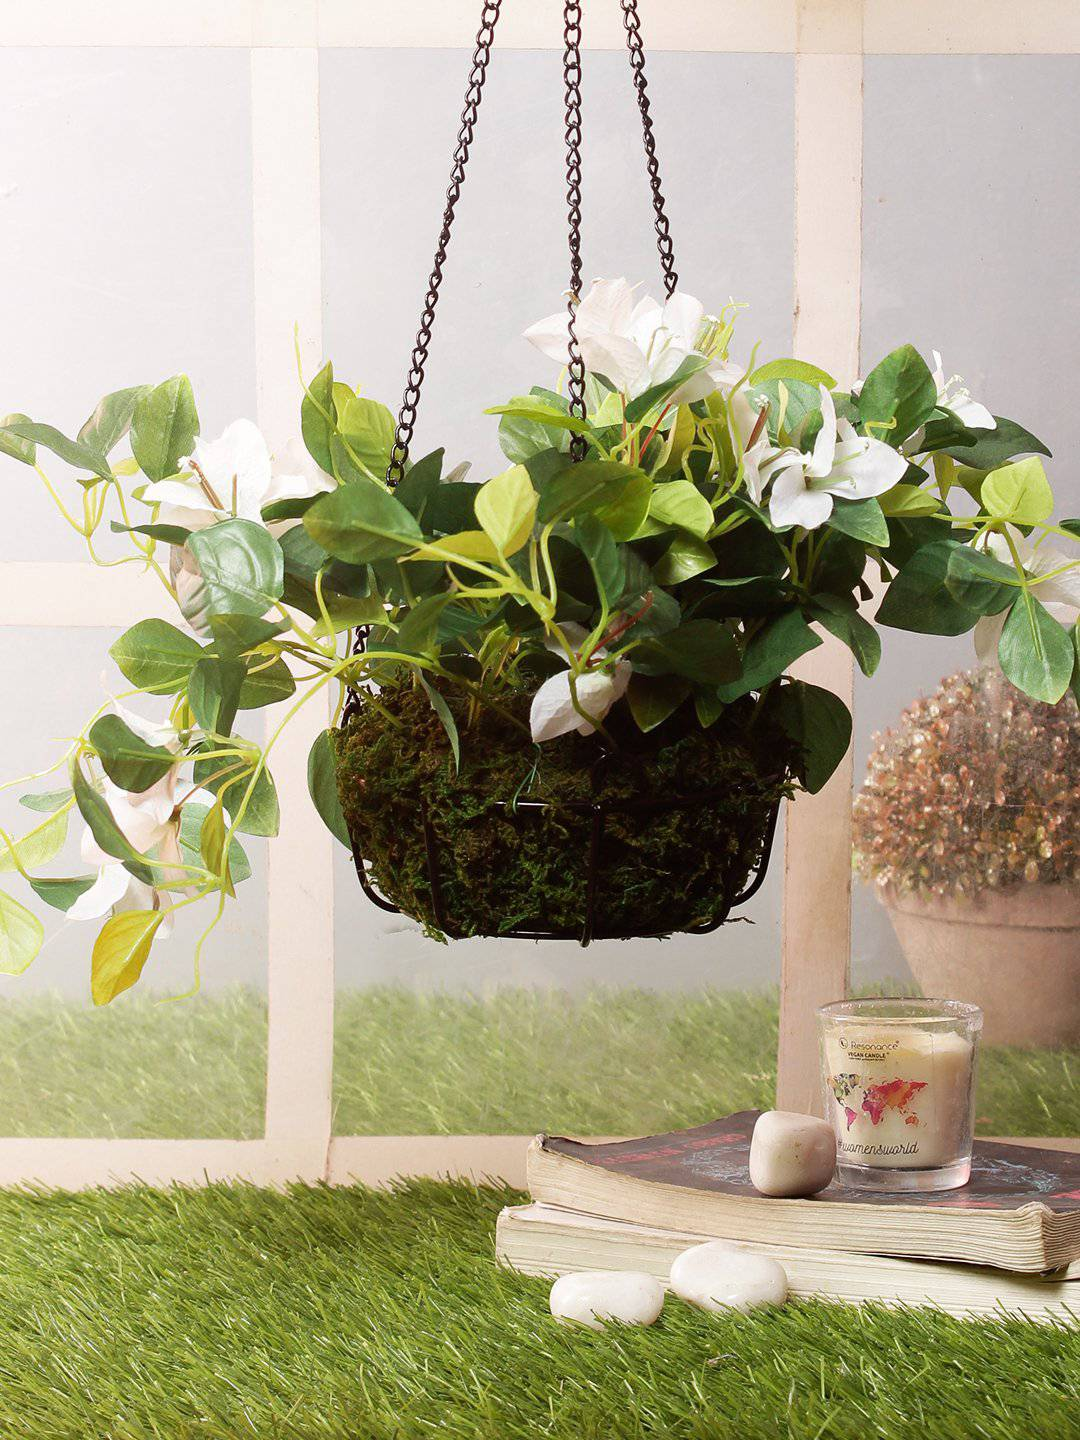 PolliNation Attractive Stunning Artificial White Bougainvillea Creeper with Hanging Metal Stand For Home/Office/Balcony Decor (Pack of 1, 40 cm) - Artificial Flowers & Plants - PolliNation